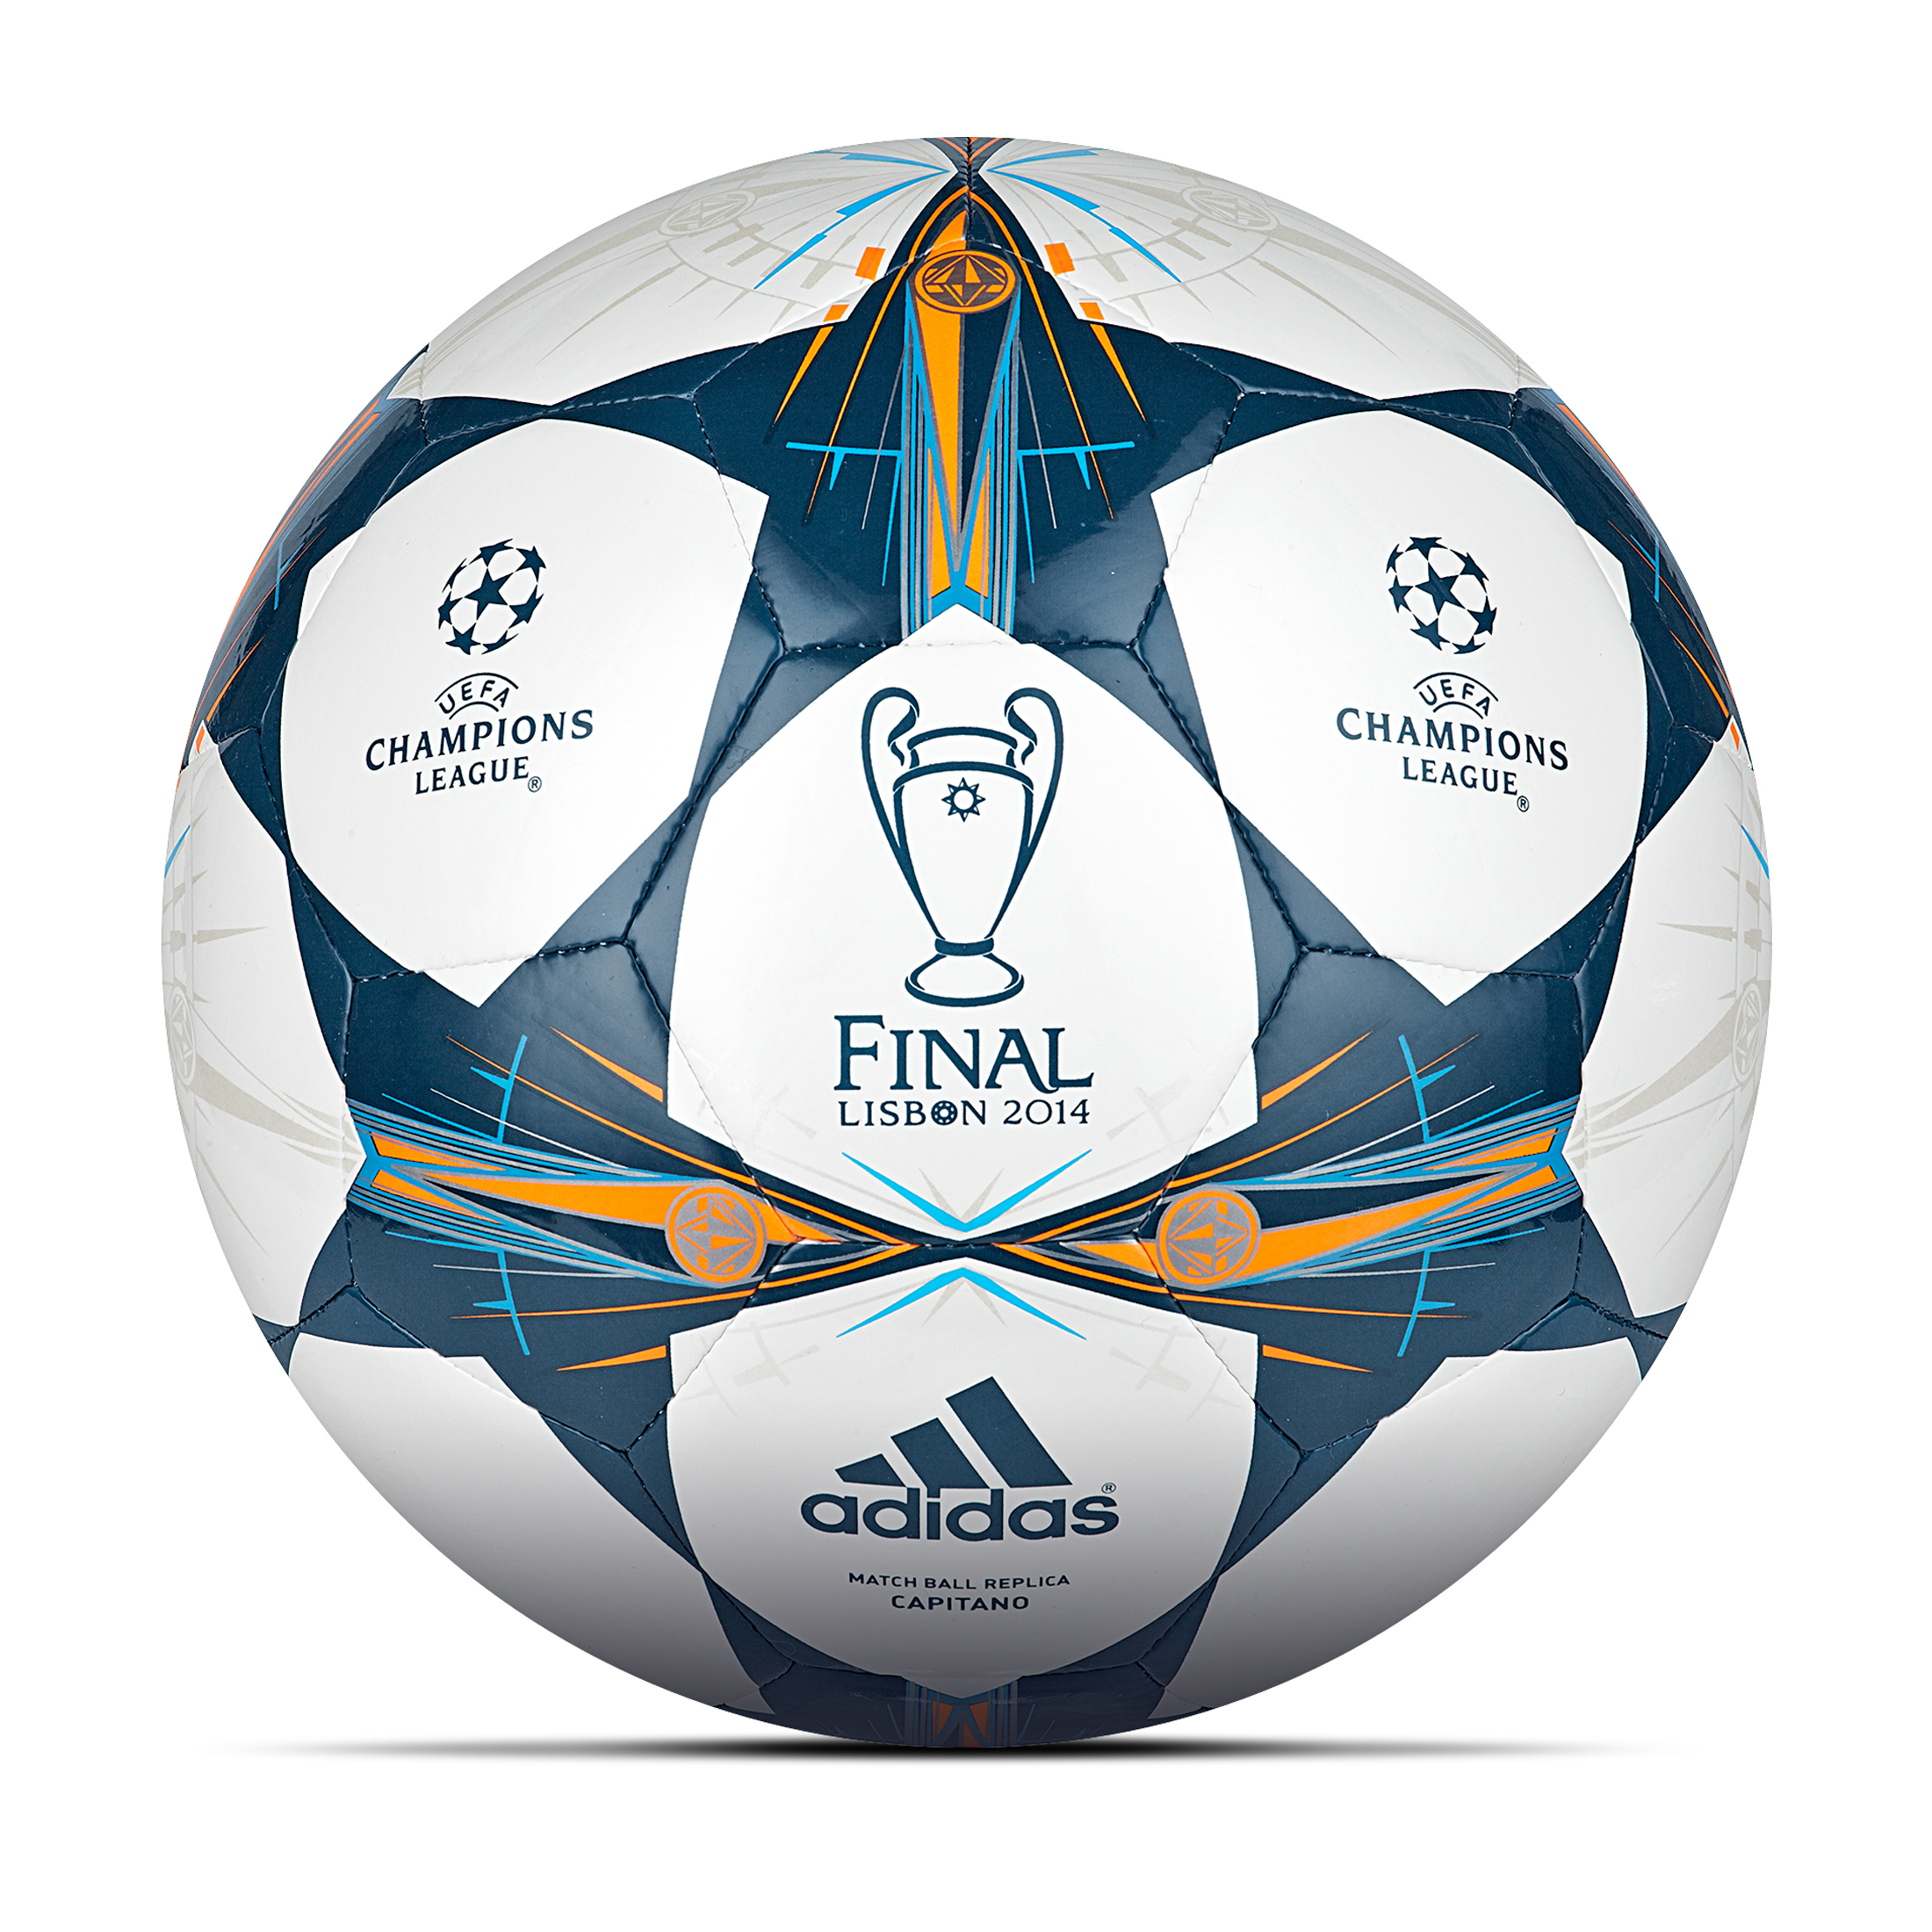 Adidas UEFA Champions League 2013/14 Final Capitano Football White